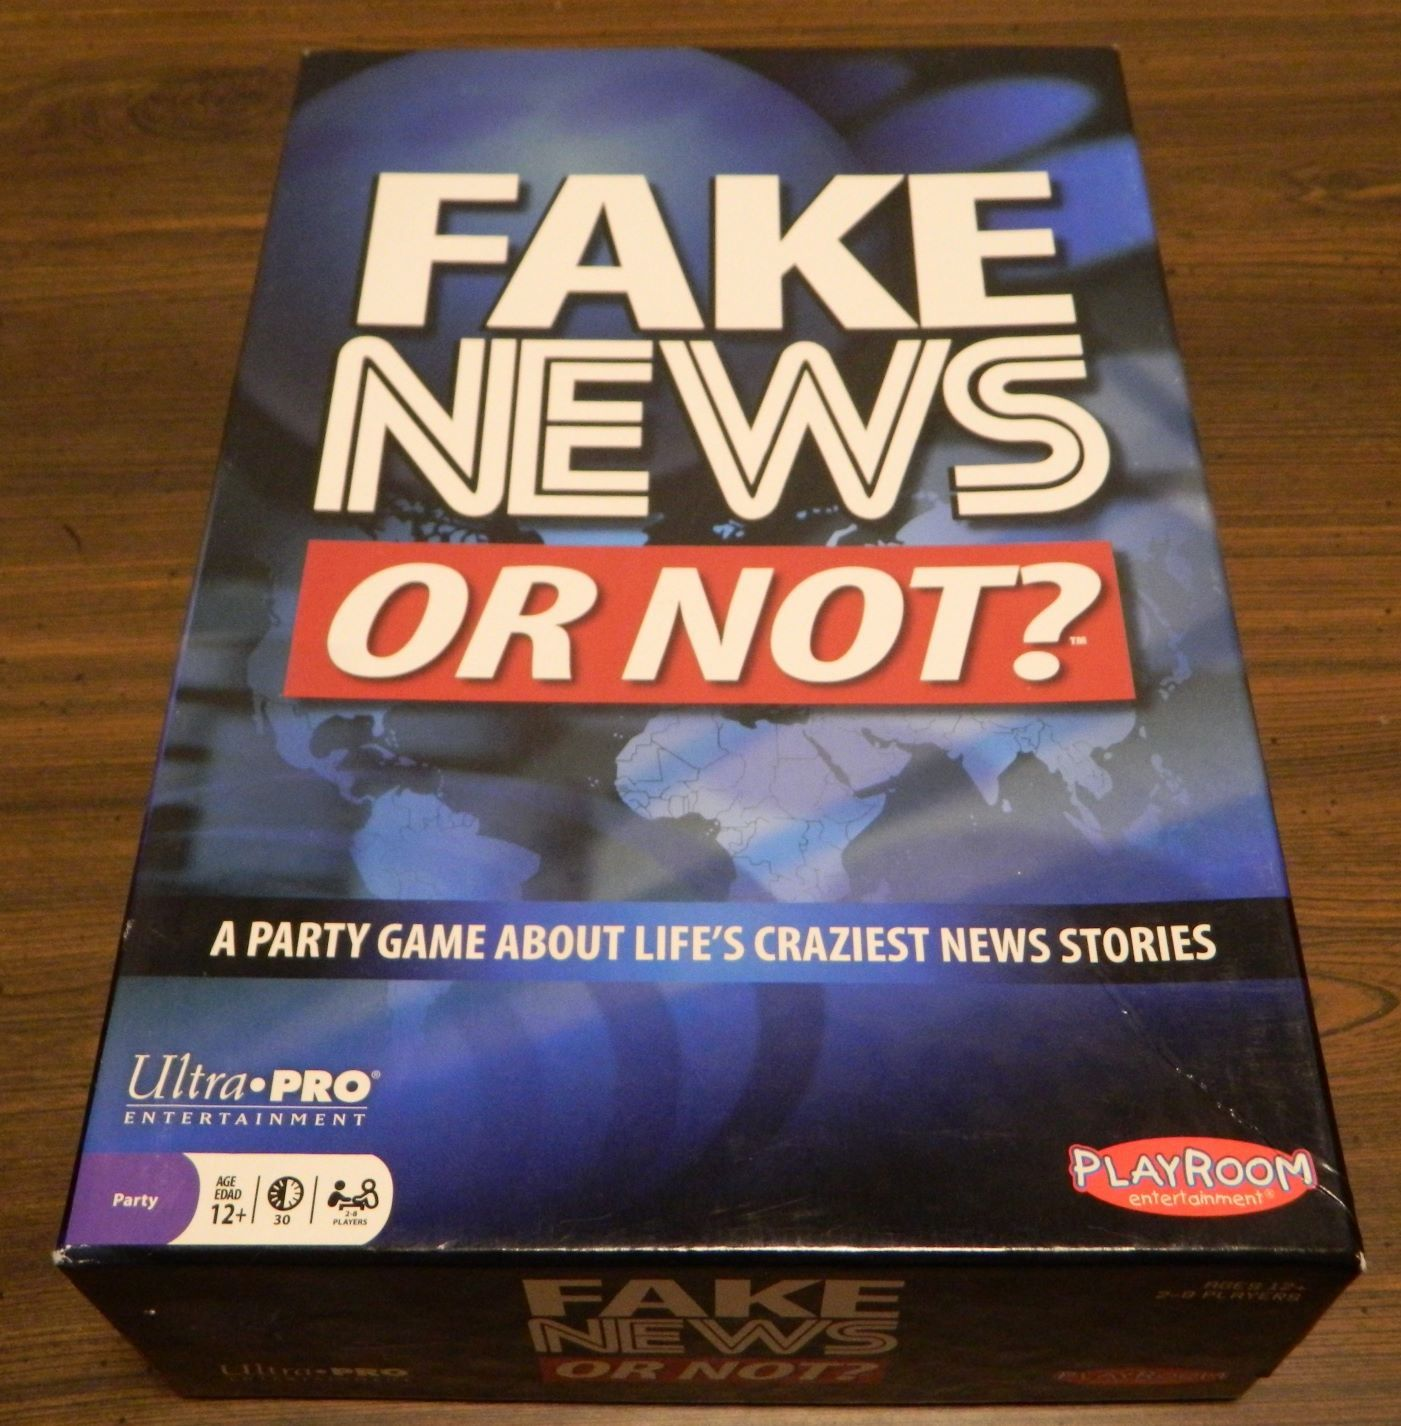 Box for Fake News or Not?